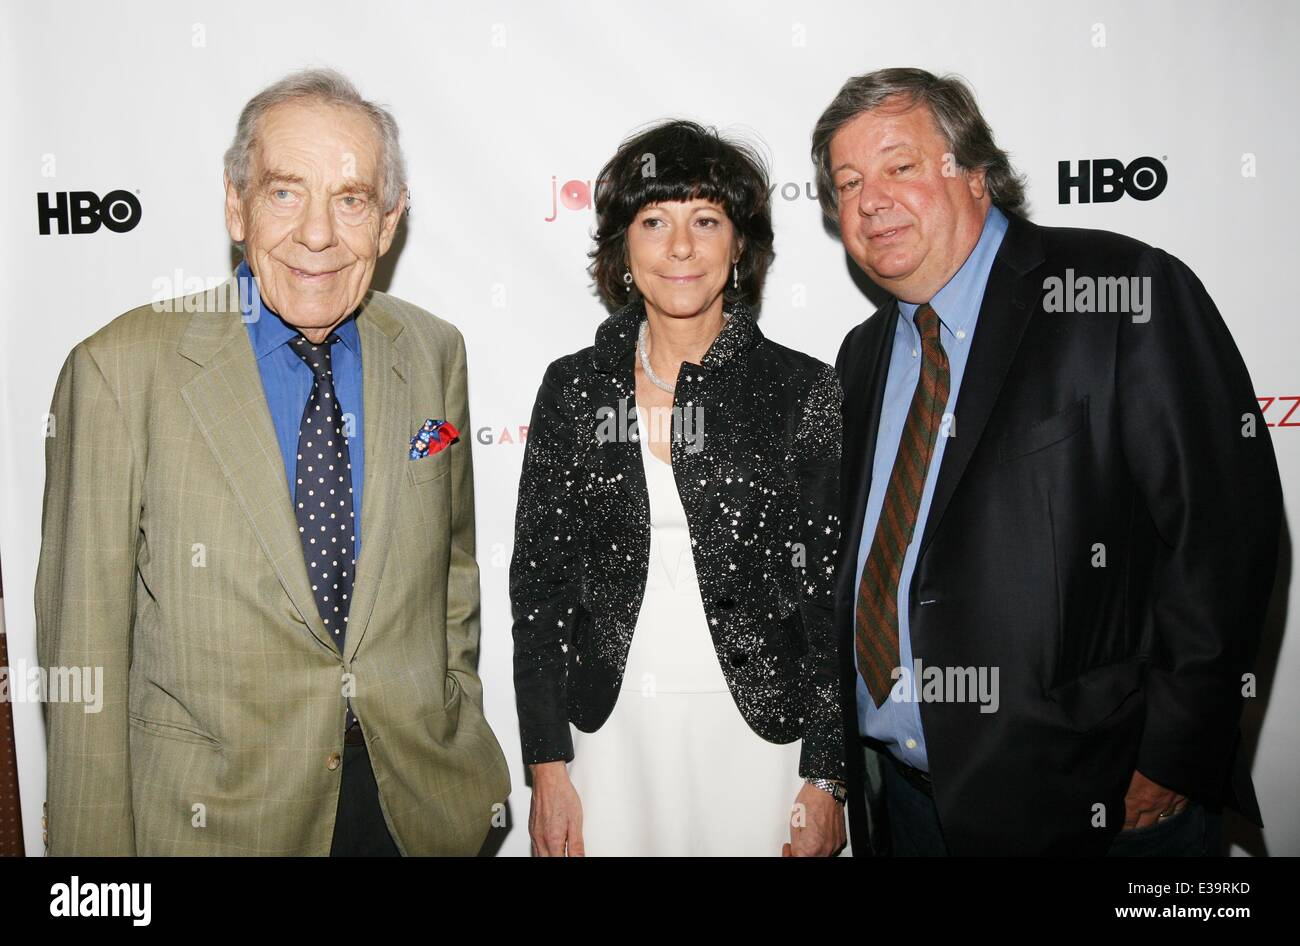 Wynton Marsalis: A YoungArts MasterClass' New York Premiere at Museum of Modern Art  Featuring: Morley Safer,Karen - Stock Image